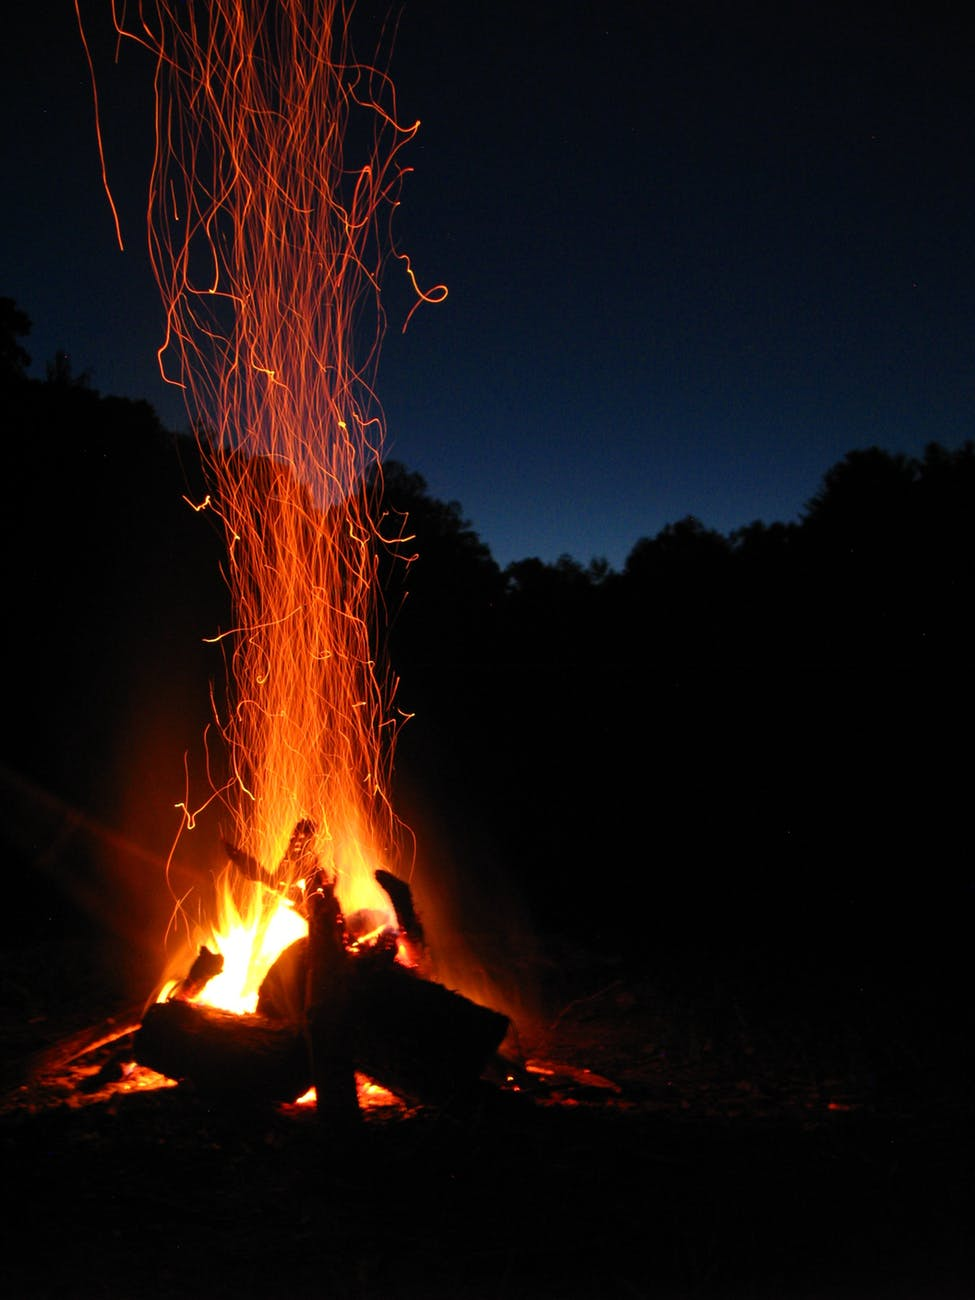 pexels-photo-266416.jpeg